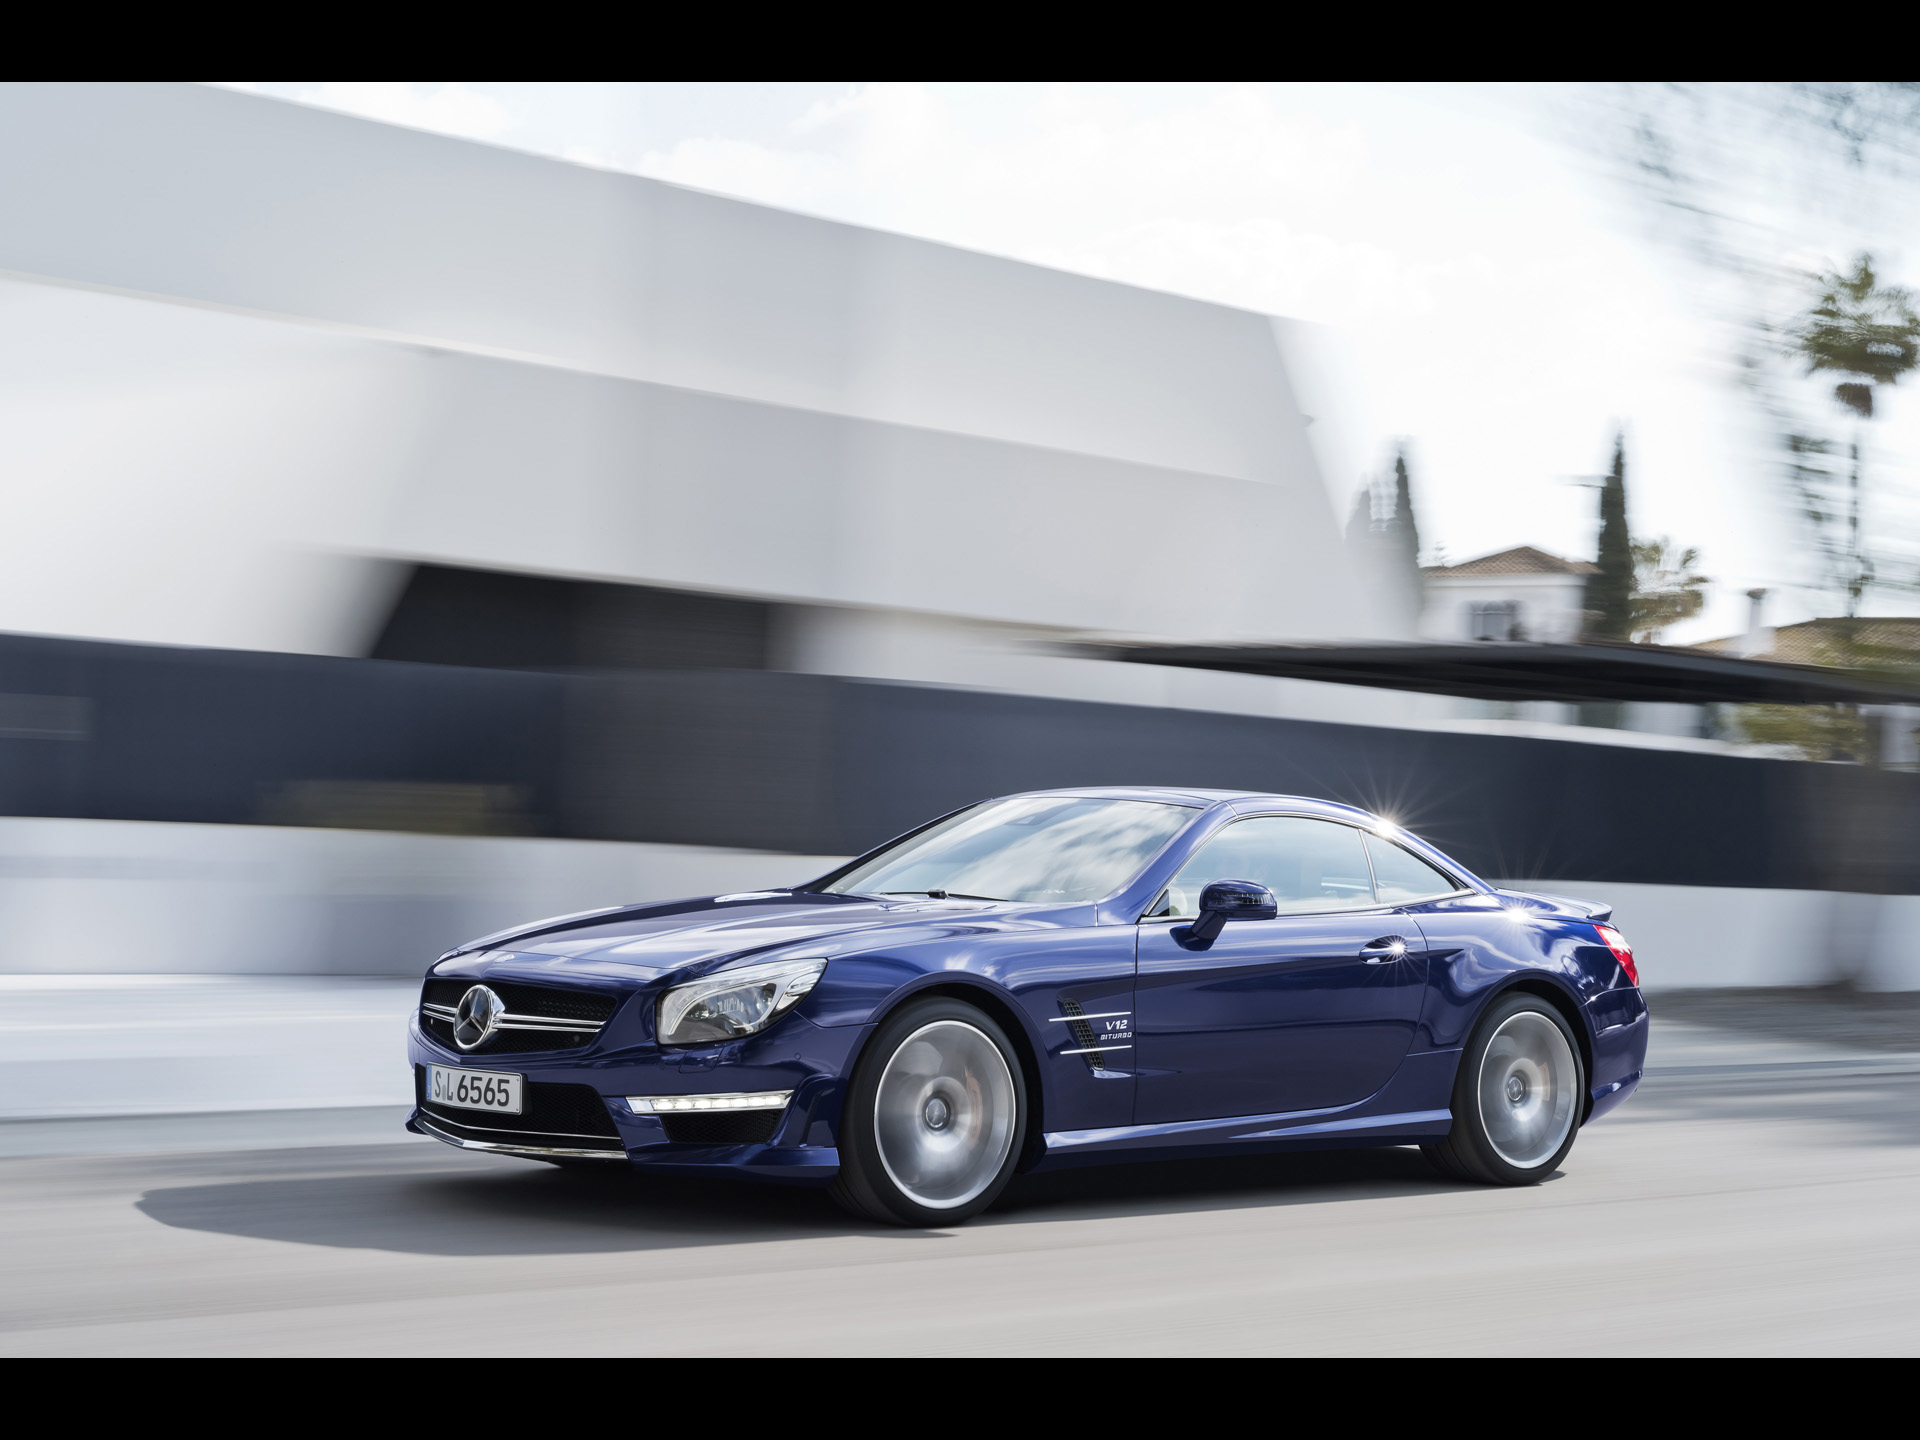 2013 mercedes benz sl 65 amg moving wallpapers 2013 for 2013 mercedes benz sl65 amg